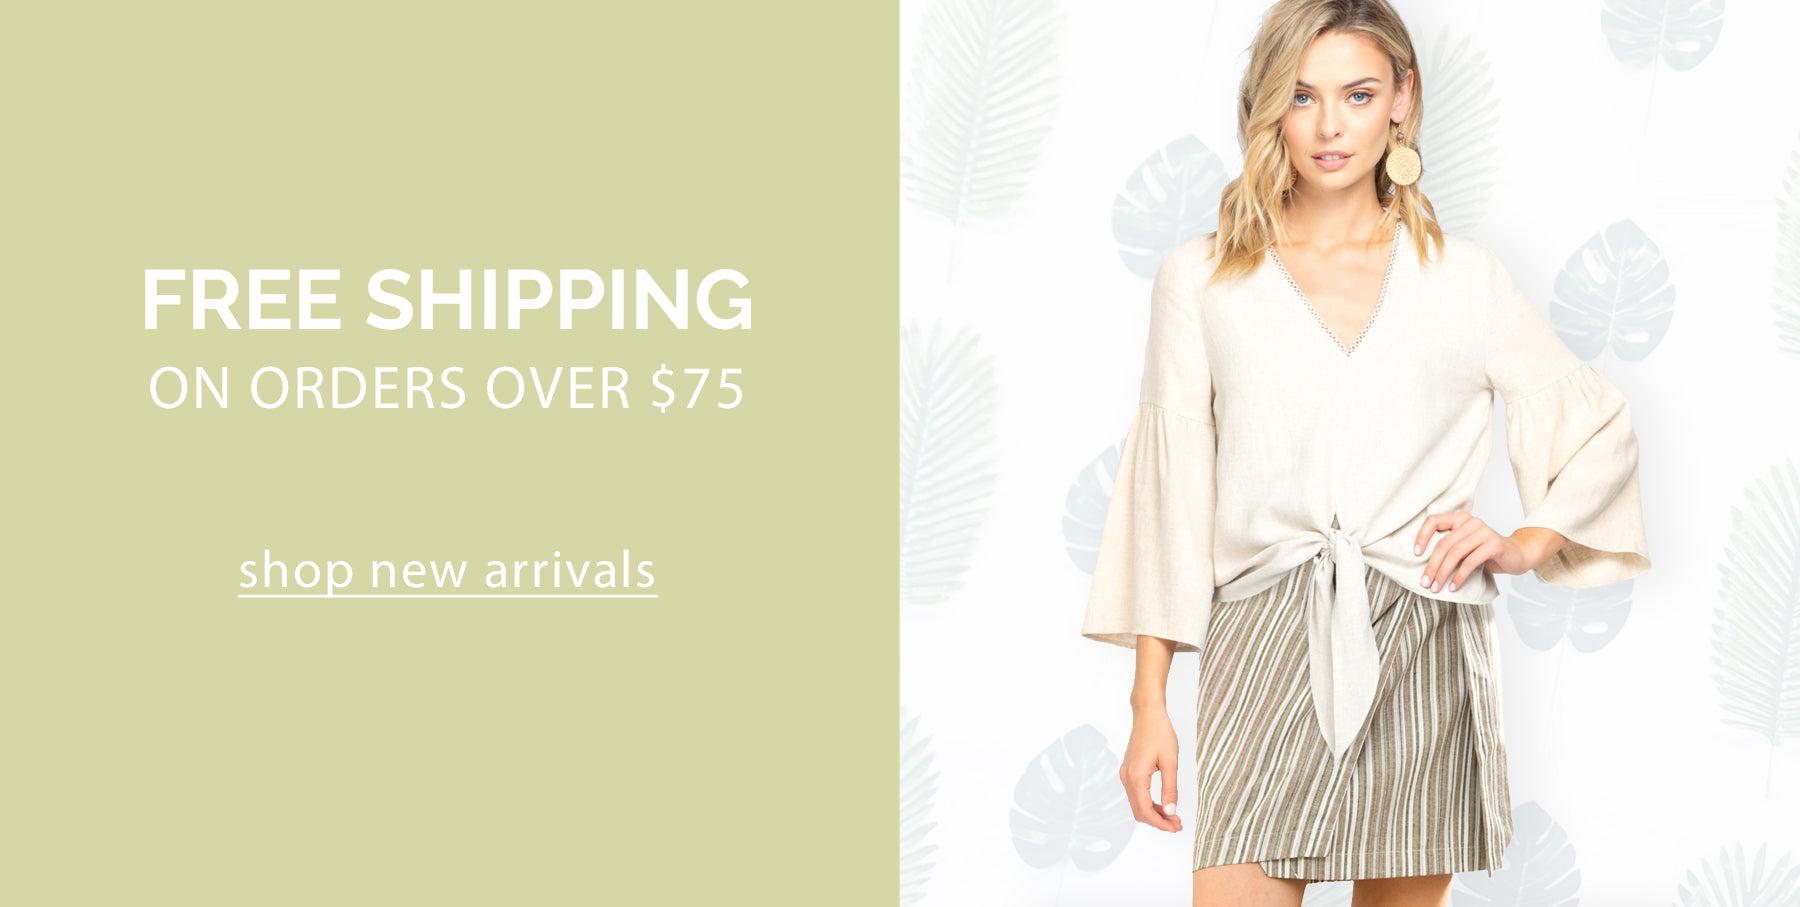 5cb6033a65 Savvy Chic Boutique, Contemporary Clothing & Accessories – Savvy Chic  Boutique | Contemporary Clothing & Accessories